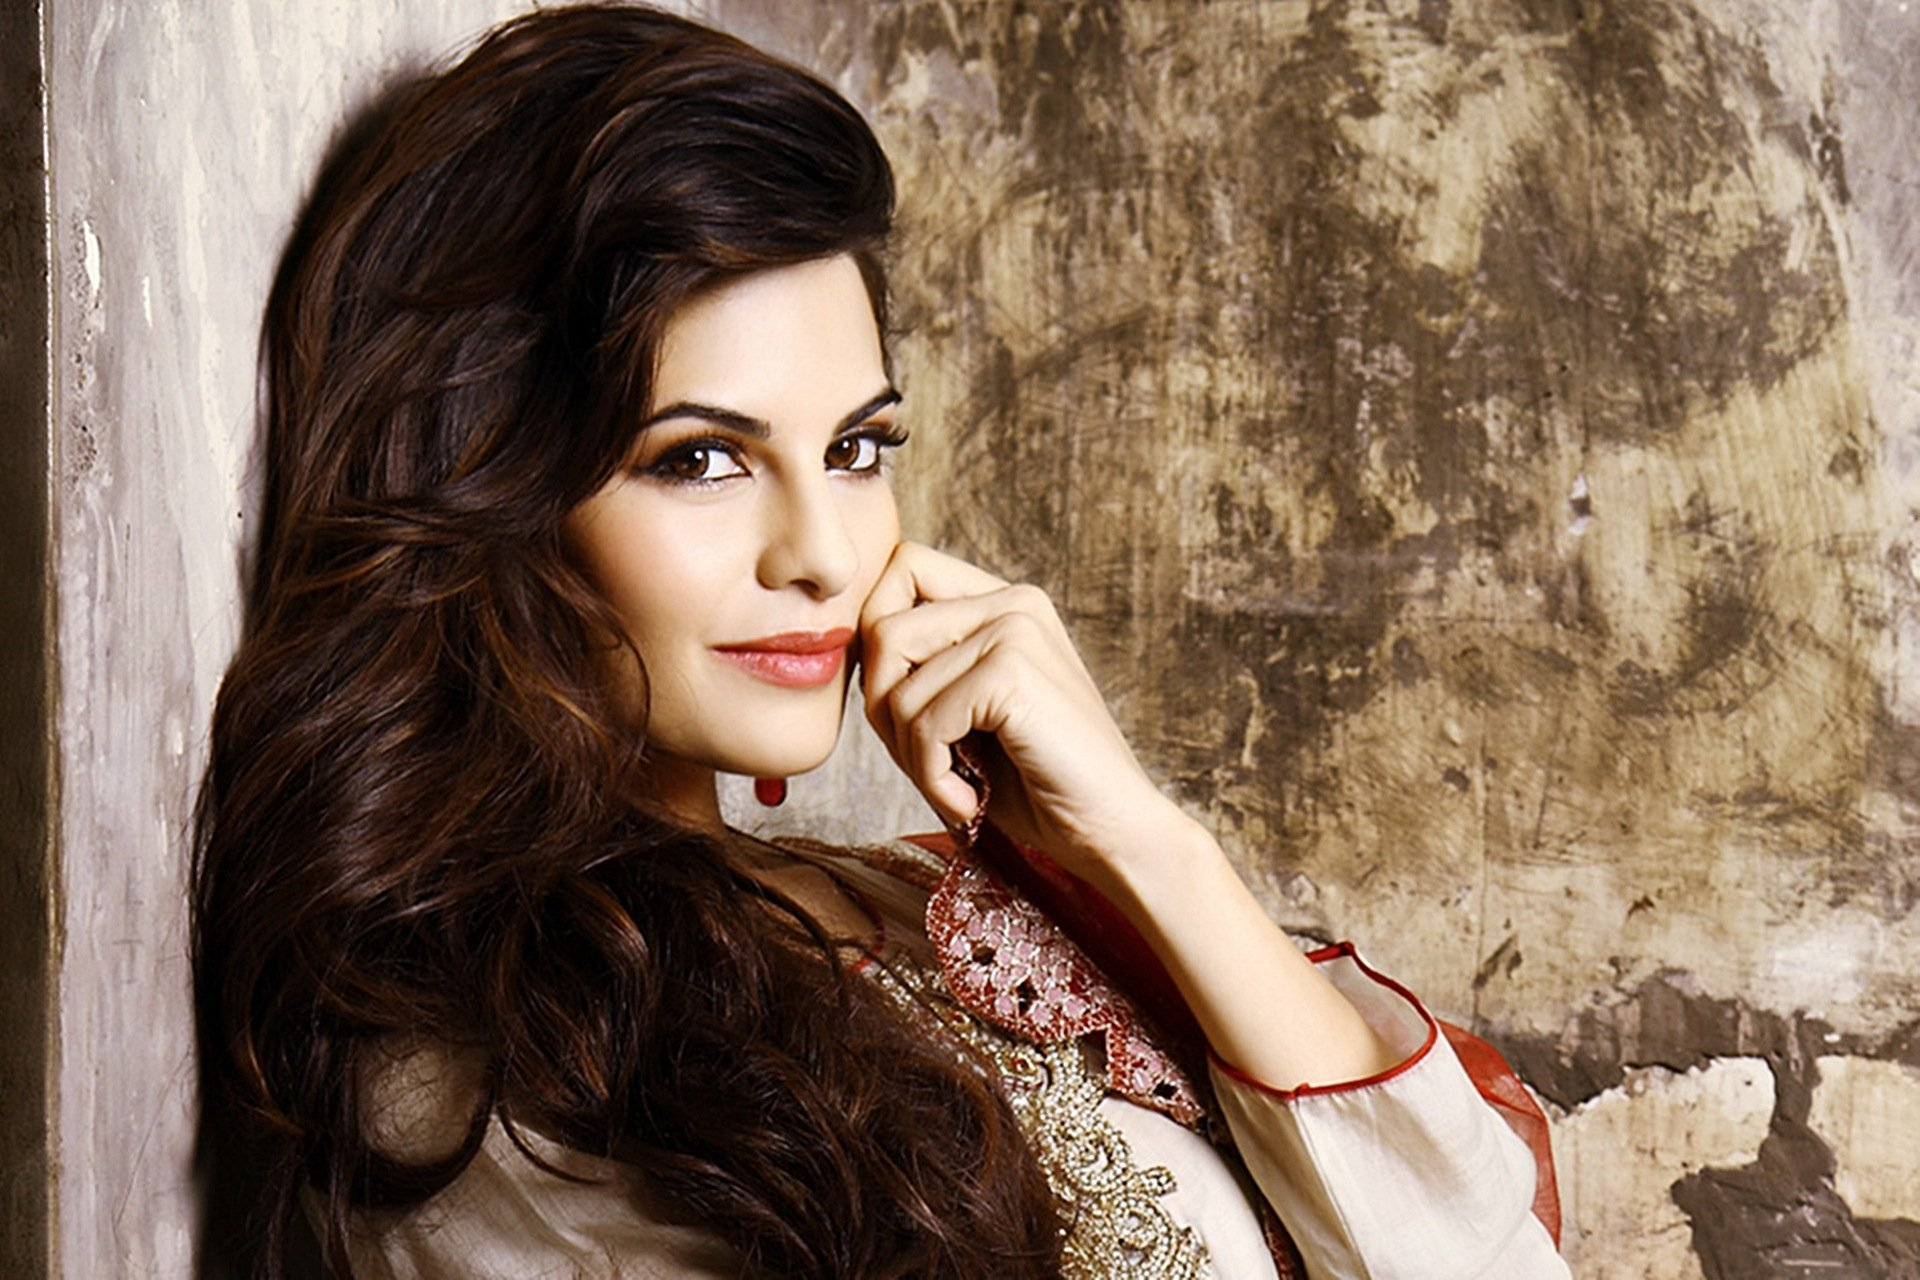 Free Download Full Hd Wallpaper Jacqueline Fernandez: Jacqueline Fernandez Wallpapers HD Cute